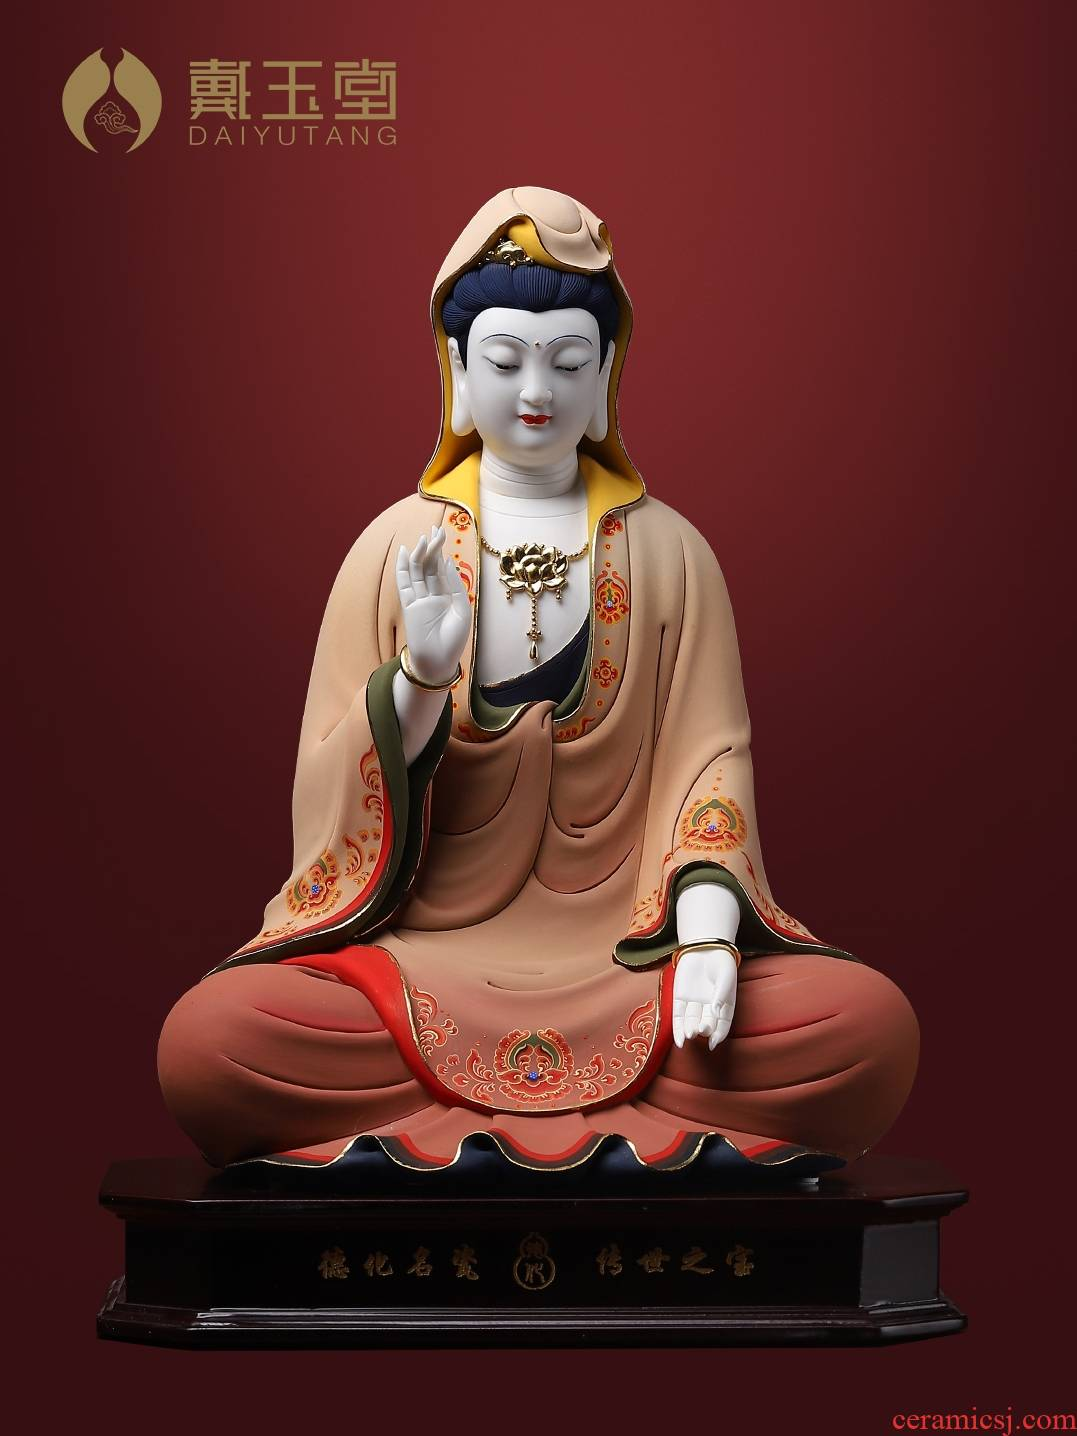 Yutang dai dehua porcelain of the south China sea avalokitesvara figure of Buddha worship that occupy the home furnishing articles very see colour is sitting guanyin sitting room